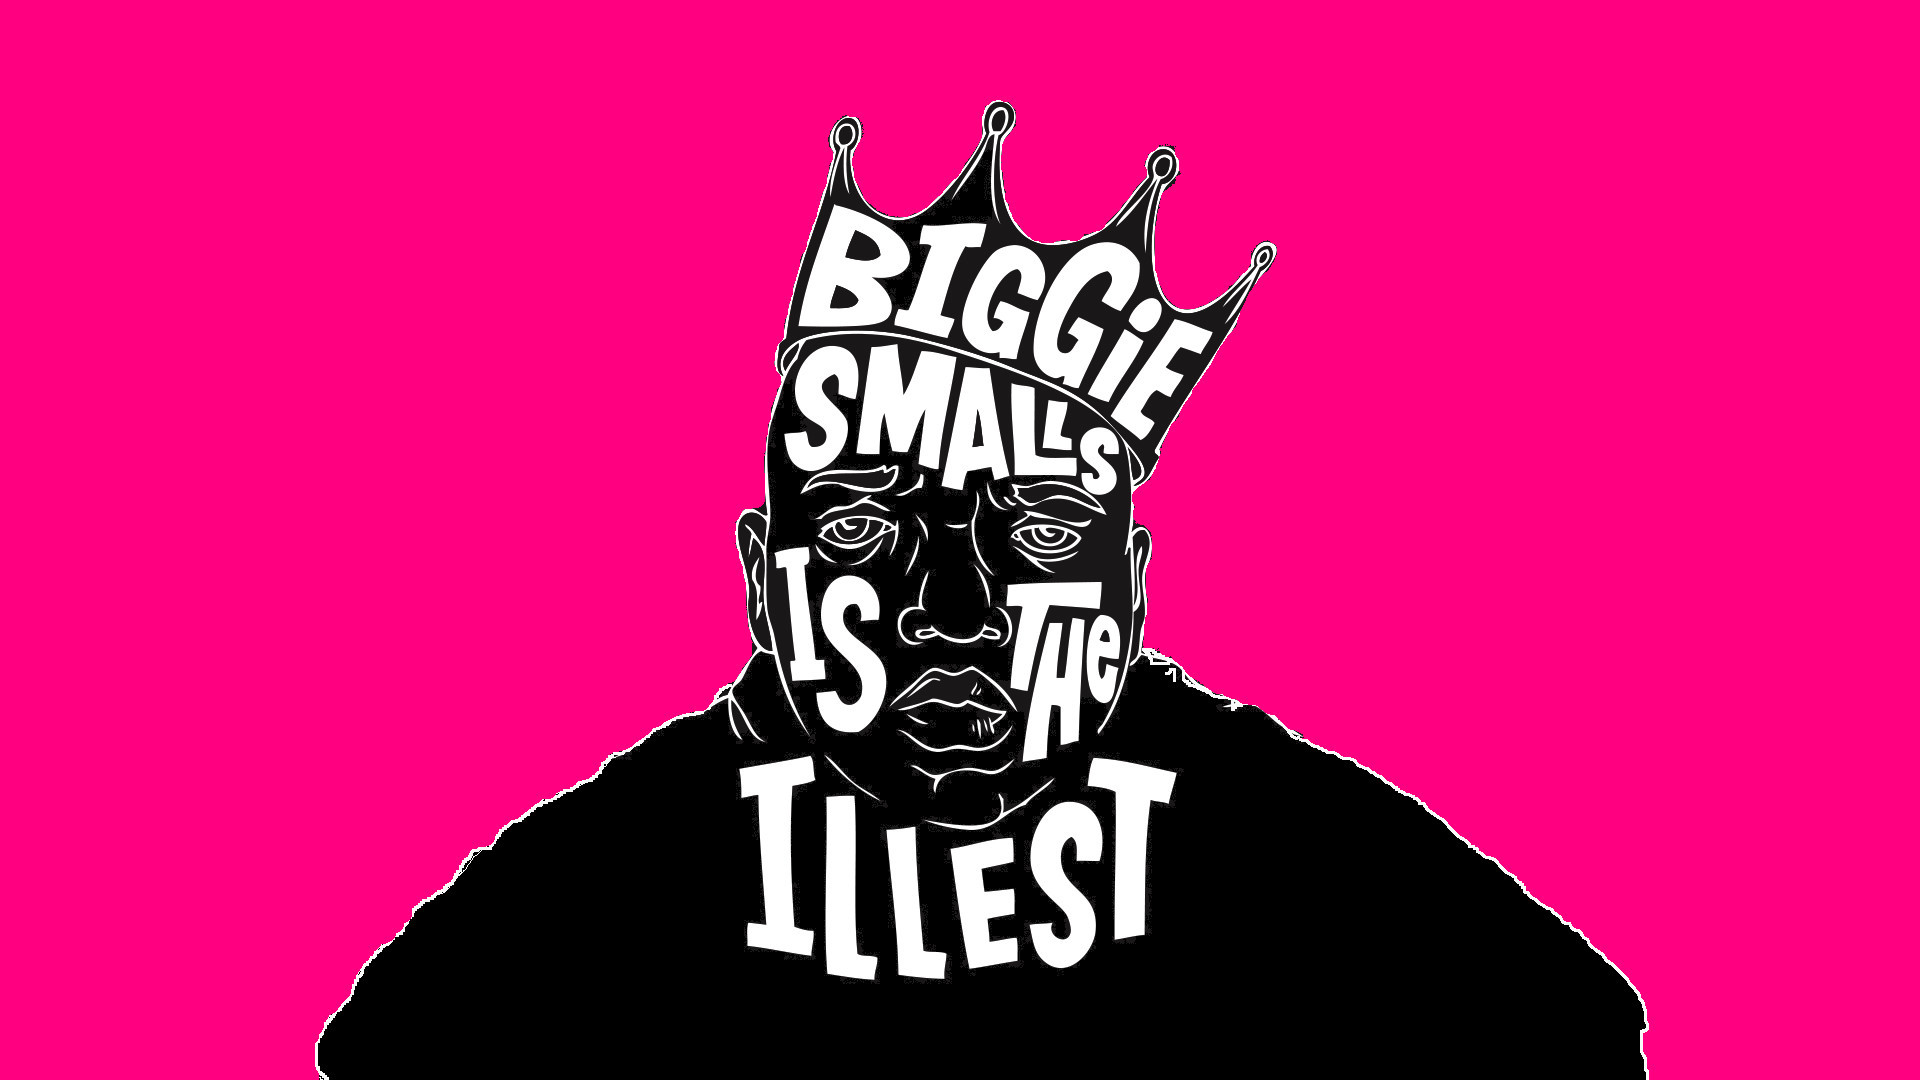 1920x1080 ... illest wallpaper hd wallppapers gallery; biggie smalls iphone wallpaper  wallpapersafari ...